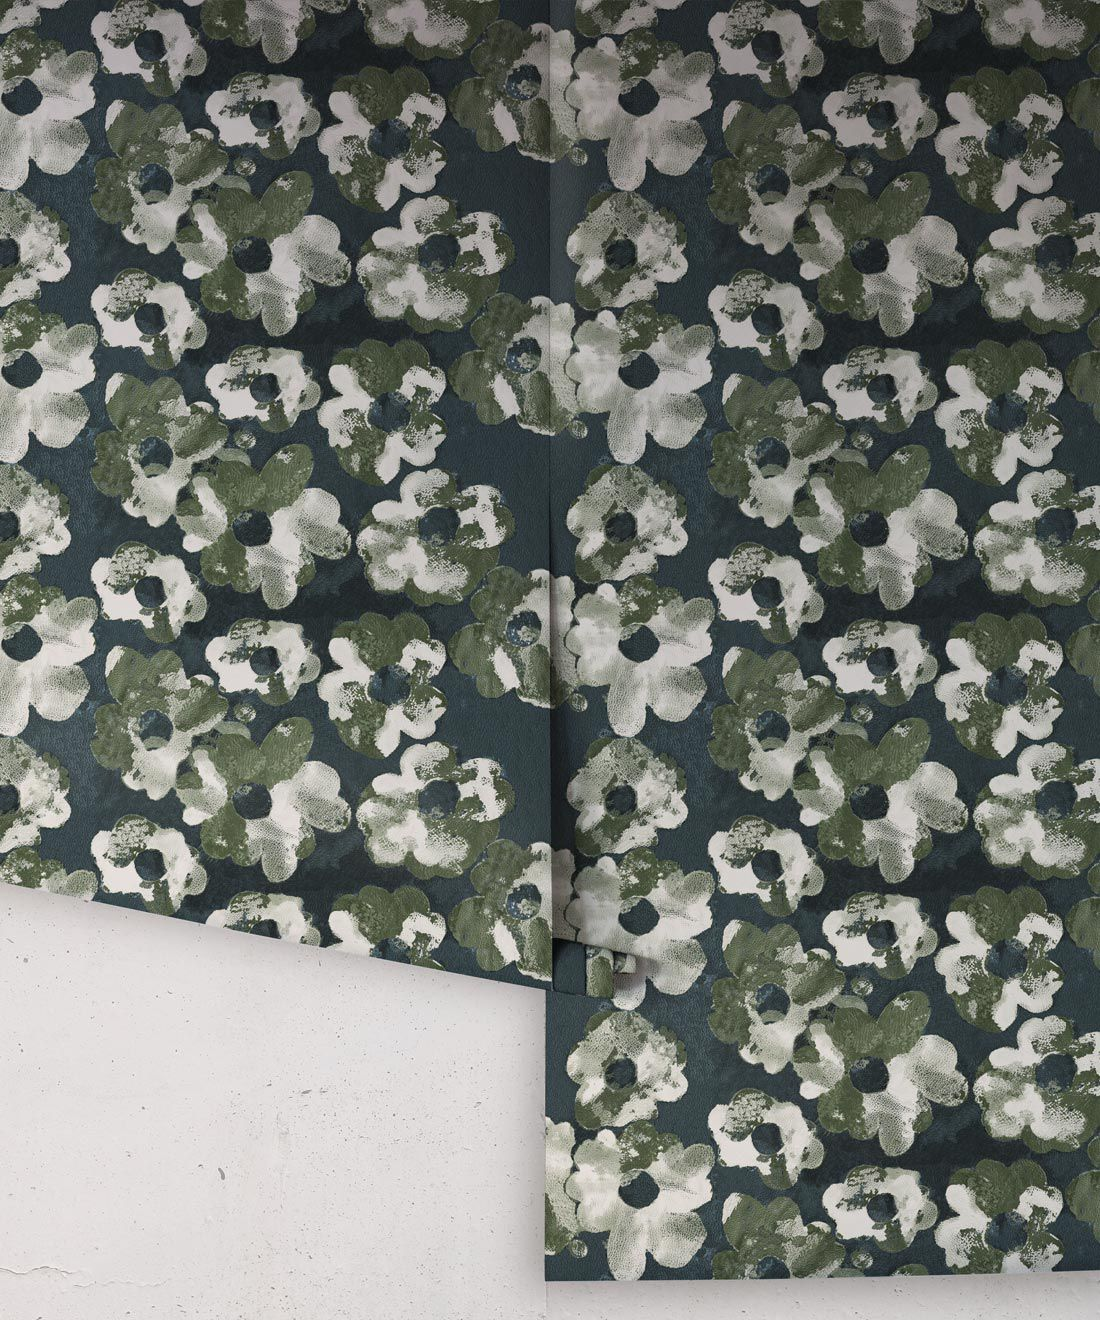 Cherry Blossom Wallpaper Night • Shibori Floral • NightRolls